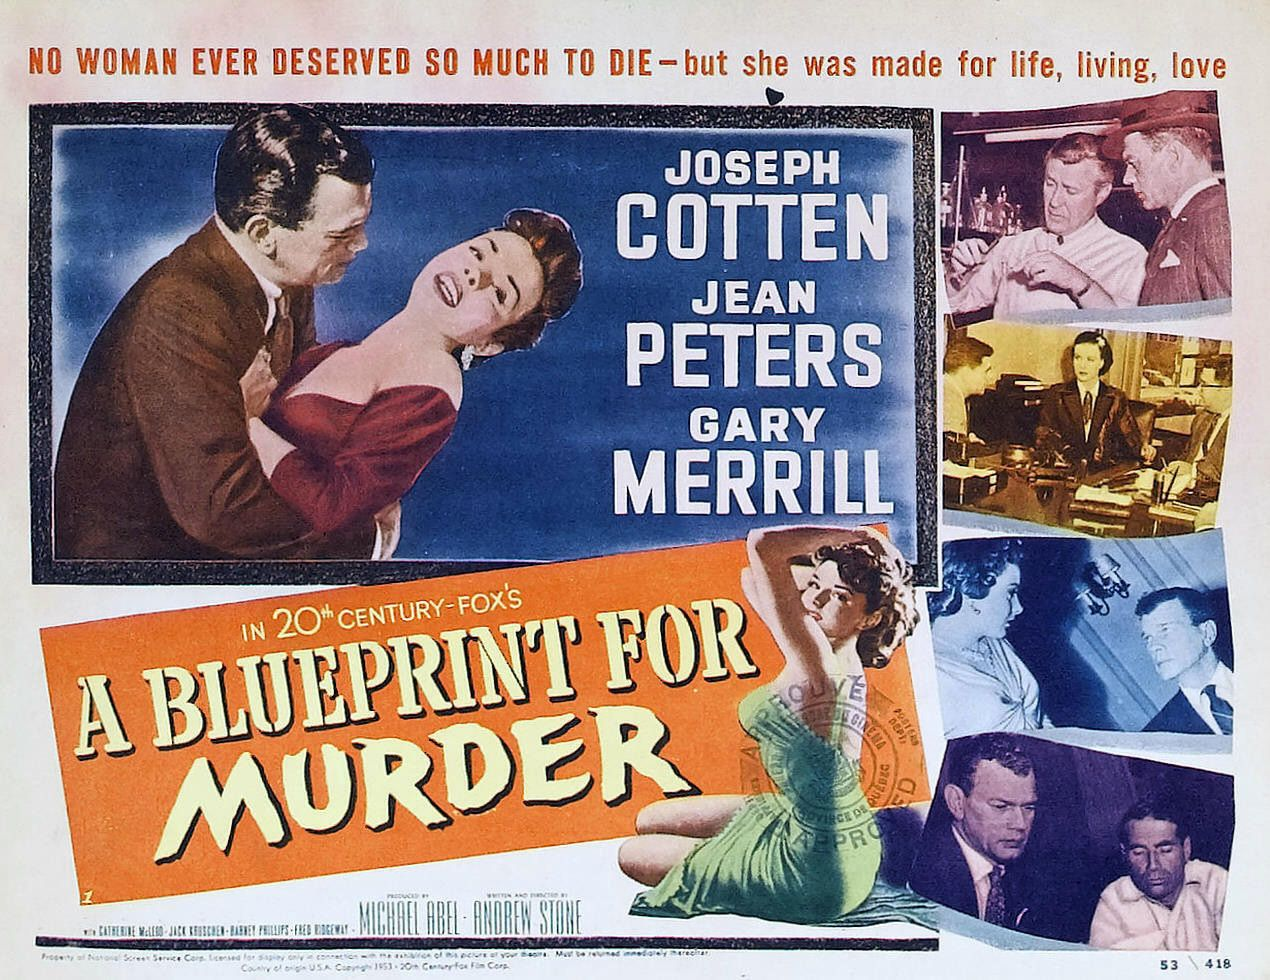 A Blueprint for Murder (1953) - Cast: Joseph Cotten, Jean Peters, Gary Merrill, Catherine McLeod - classic film thriller poster